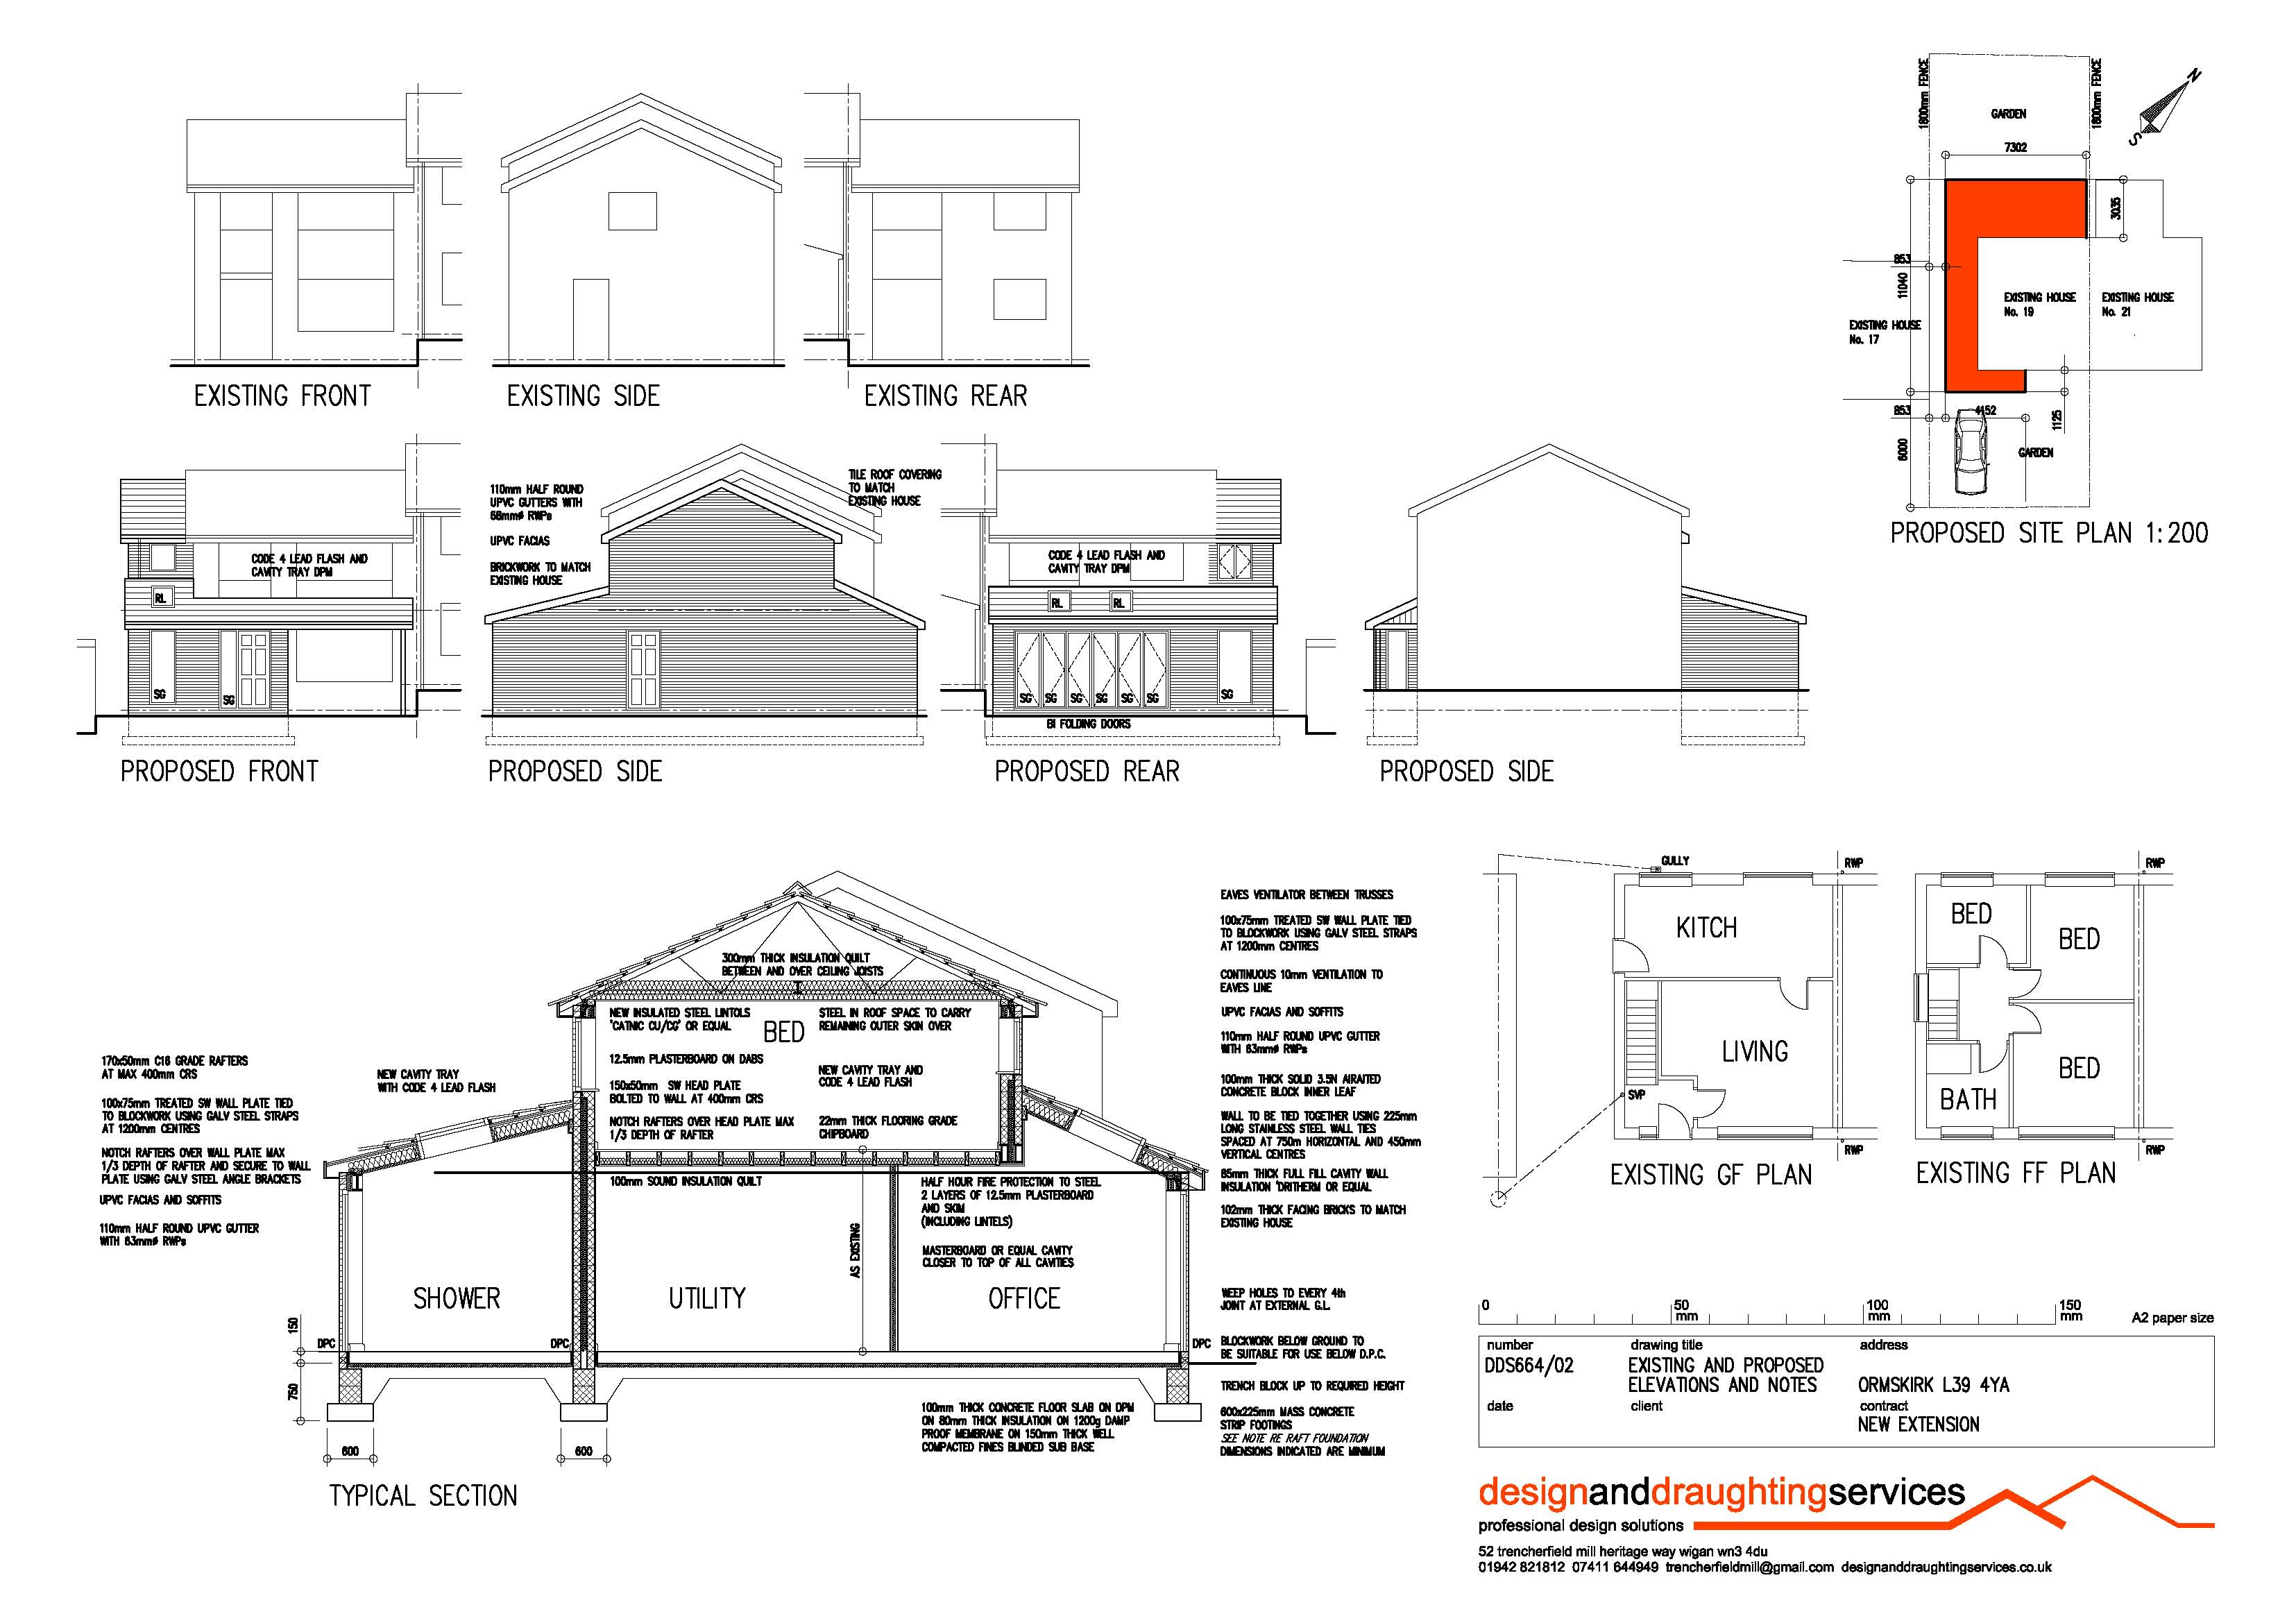 Plans Drawn For Home Extensions And Alterations